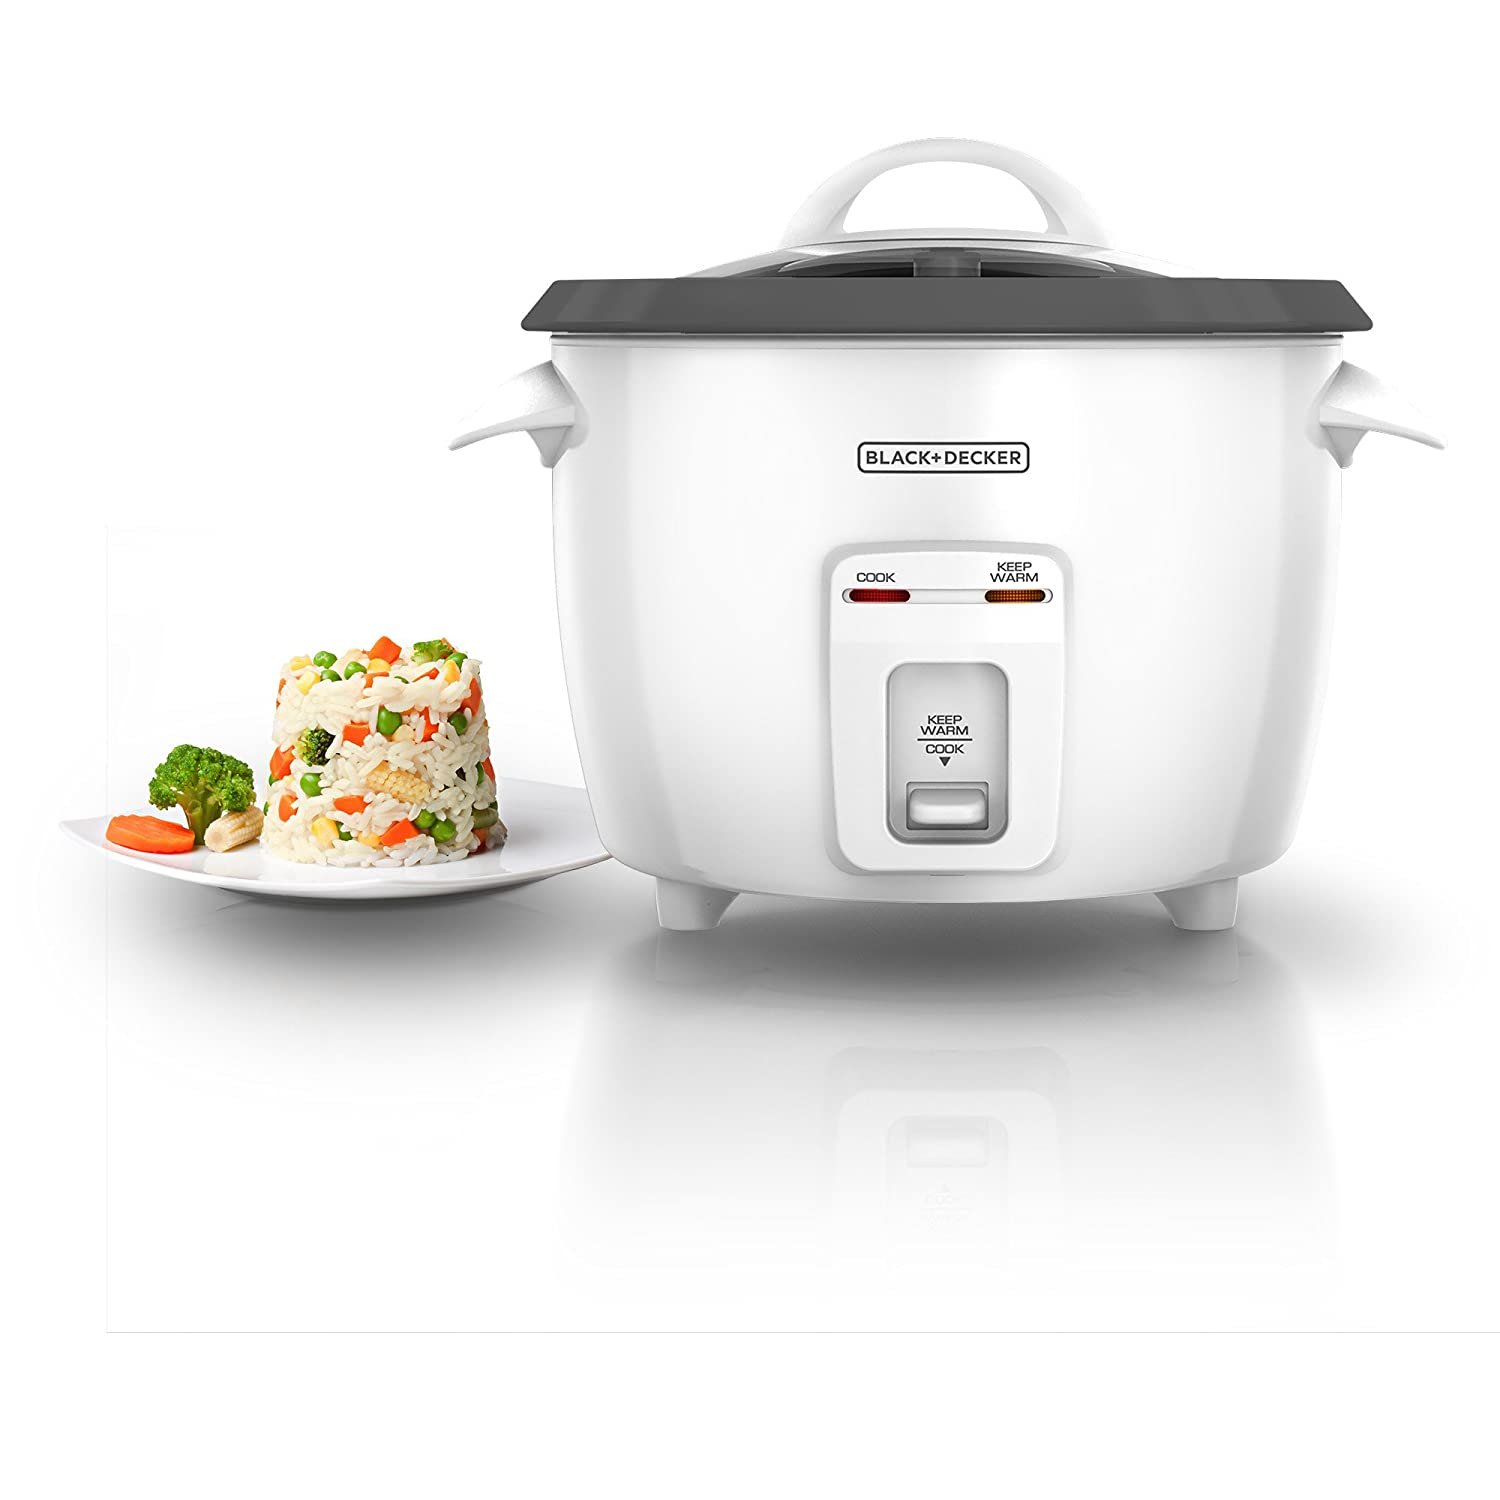 jasmine rice how to cook in rice cooker